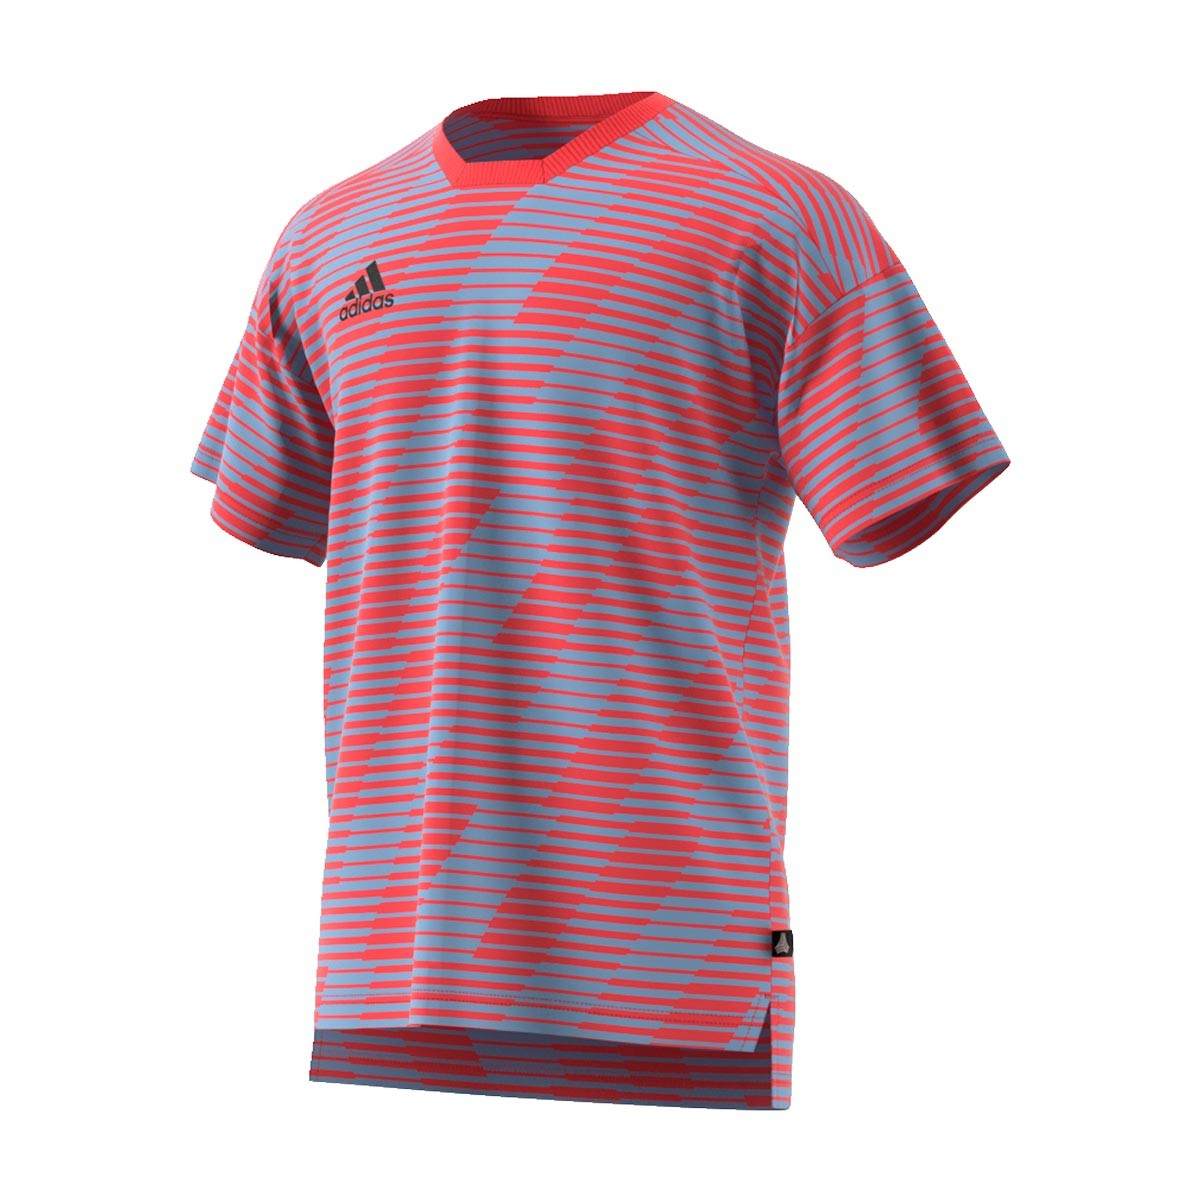 e93d9506 Jersey adidas Tango Eng Real coral - Football store Fútbol Emotion